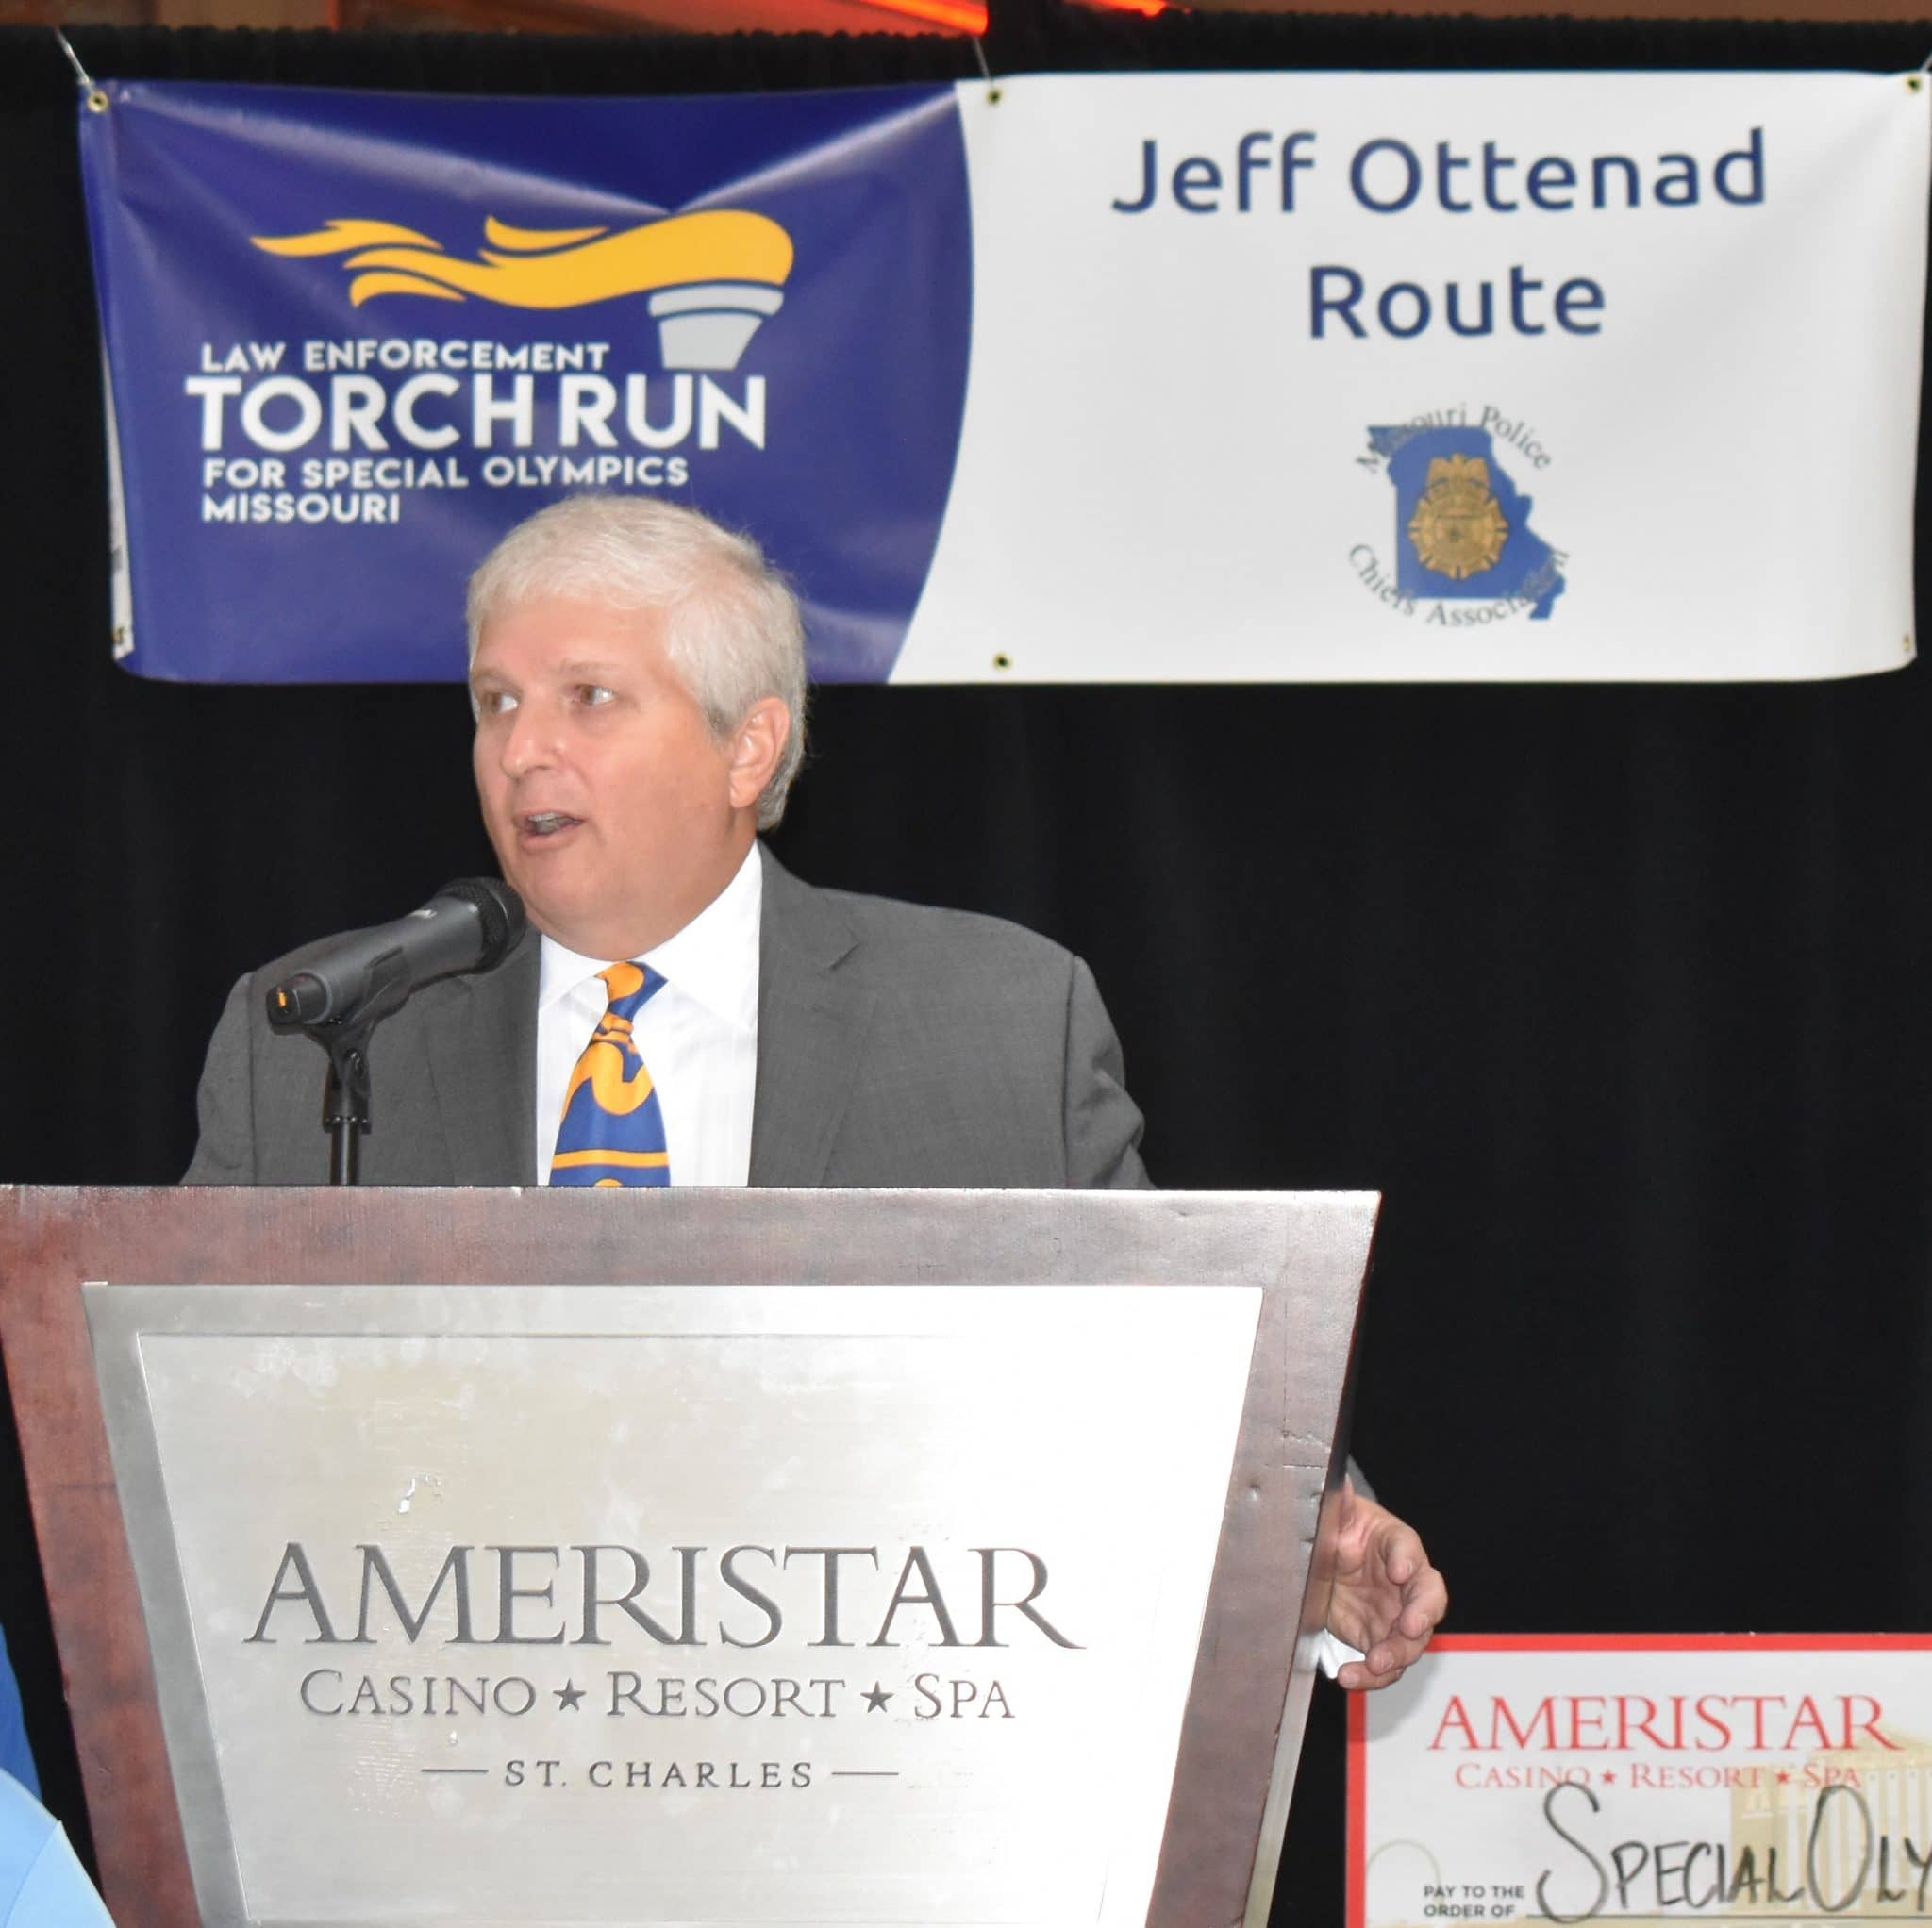 John Ottenad speaks at the opening ceremony for the Law Enforcement Torch Run for Special Olympics Missouri May 25 in St. Charles.